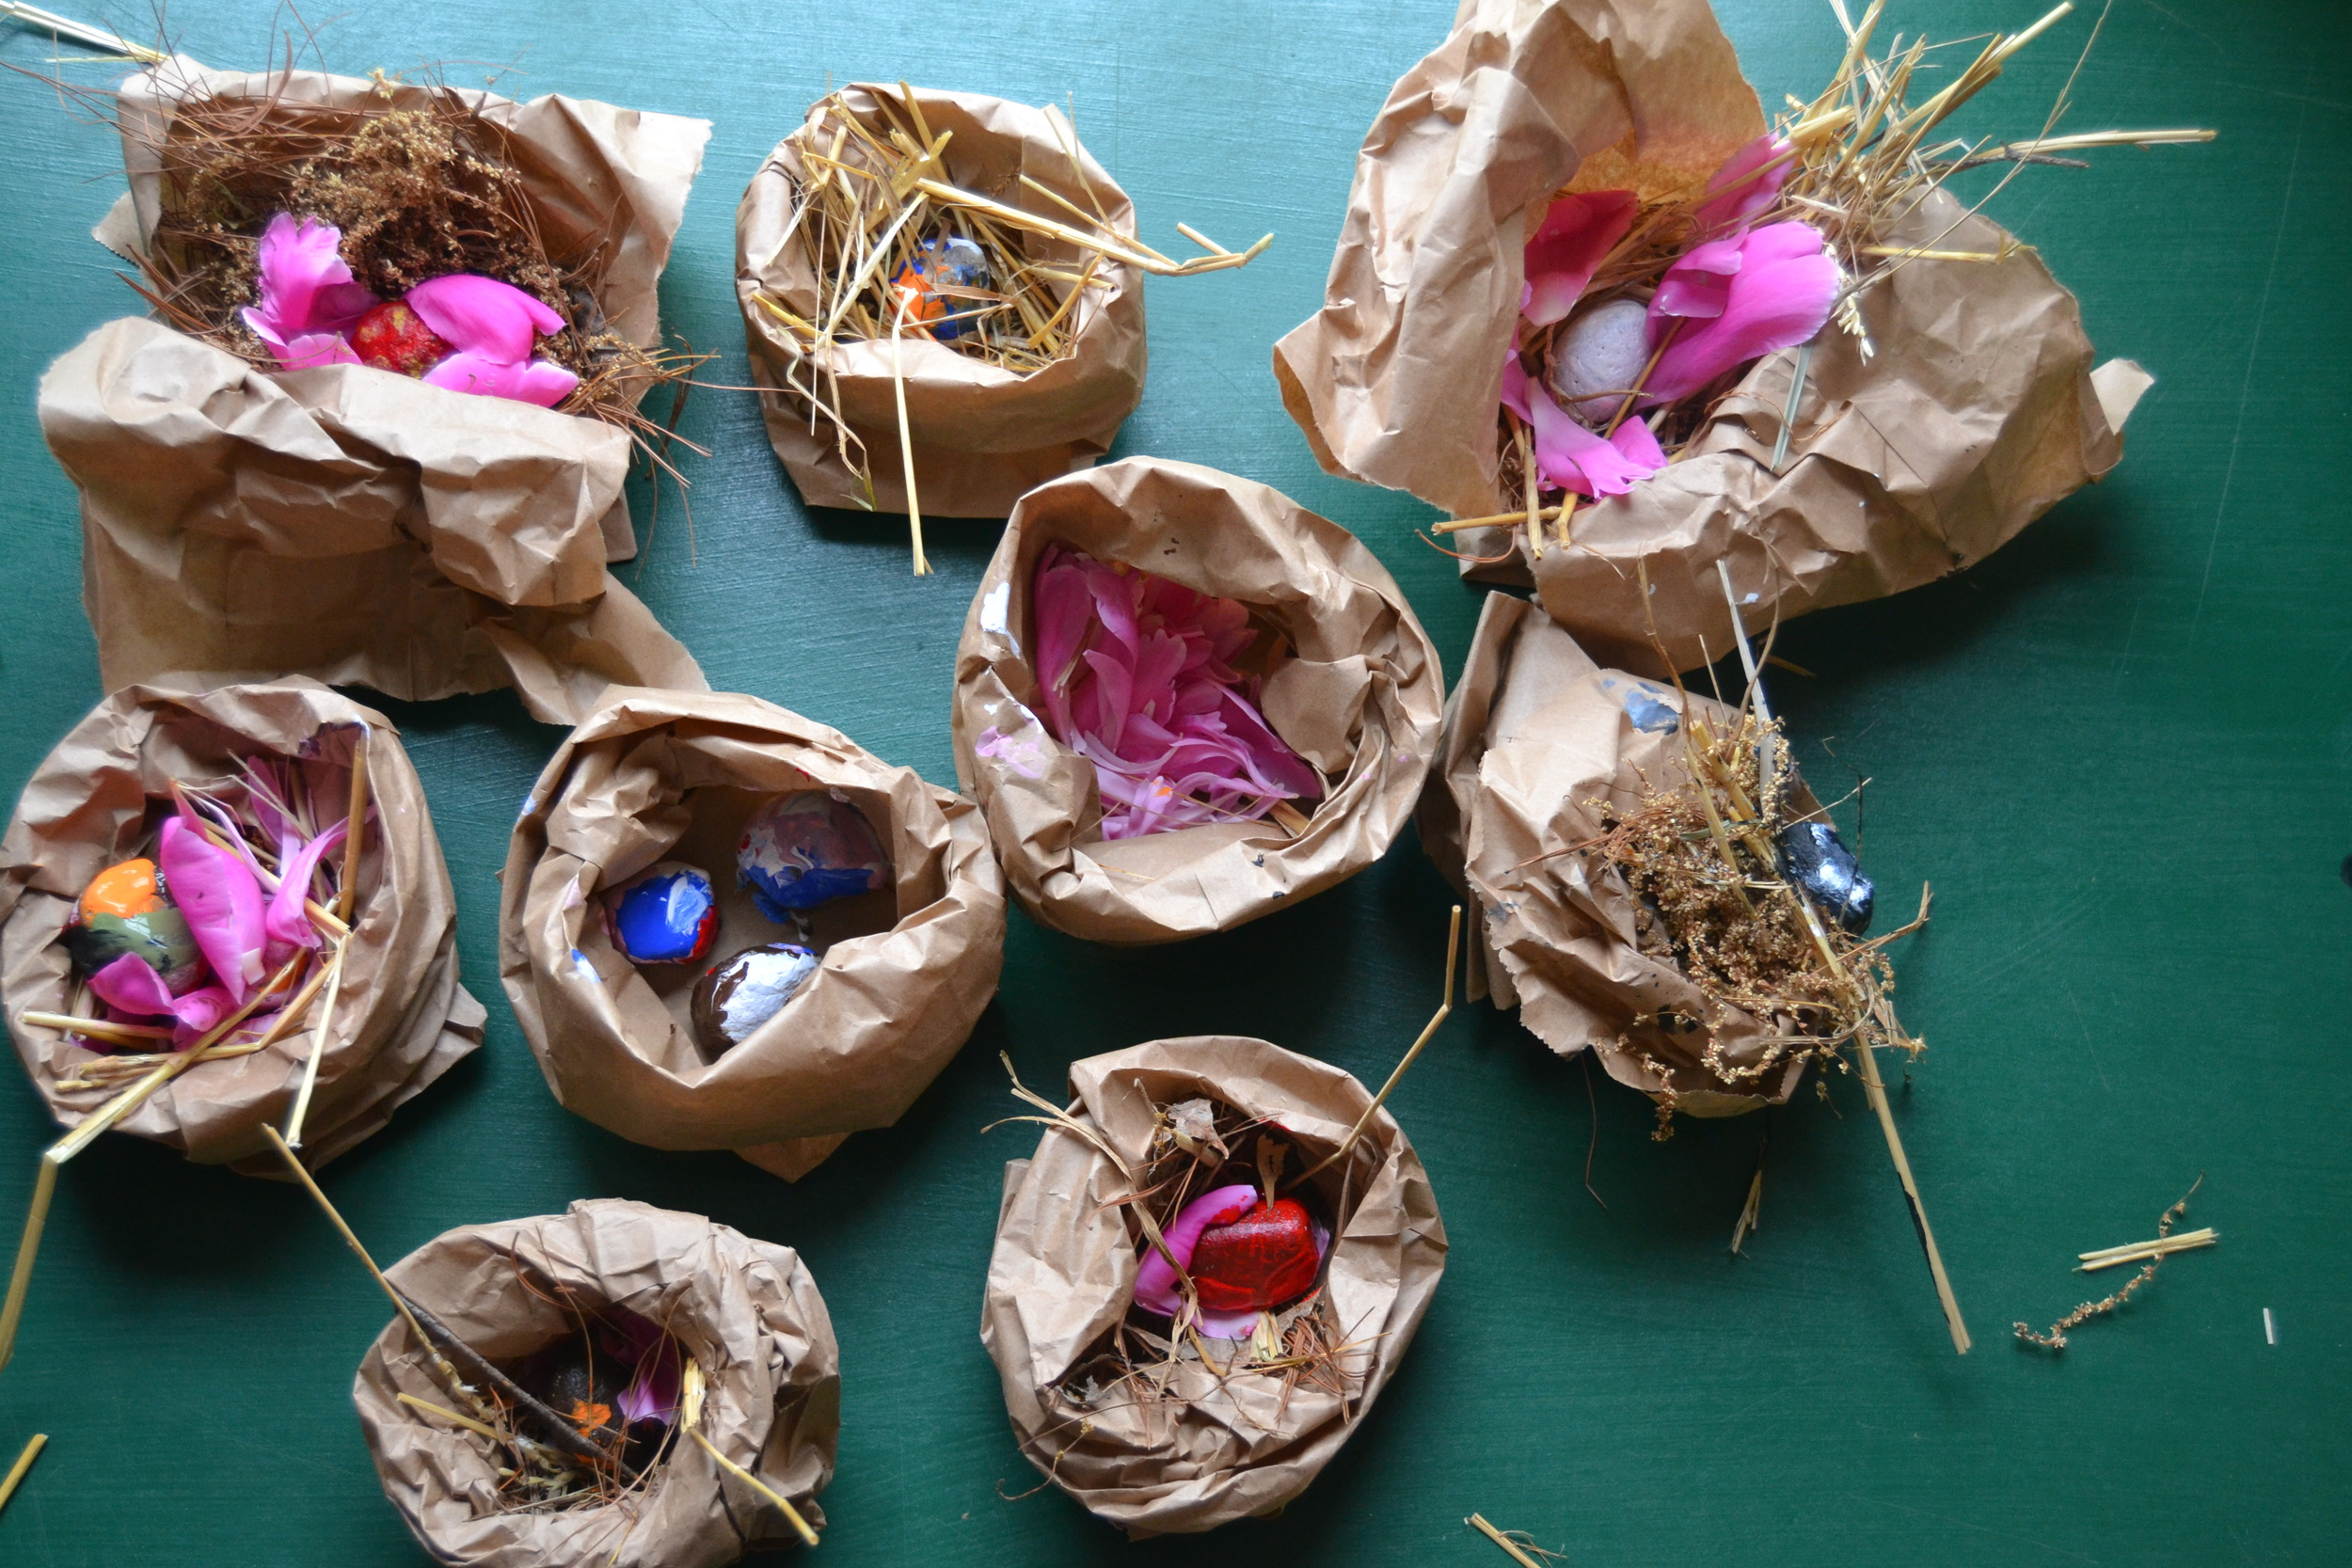 Some of the birds nests made in the greenhouse on Sunday